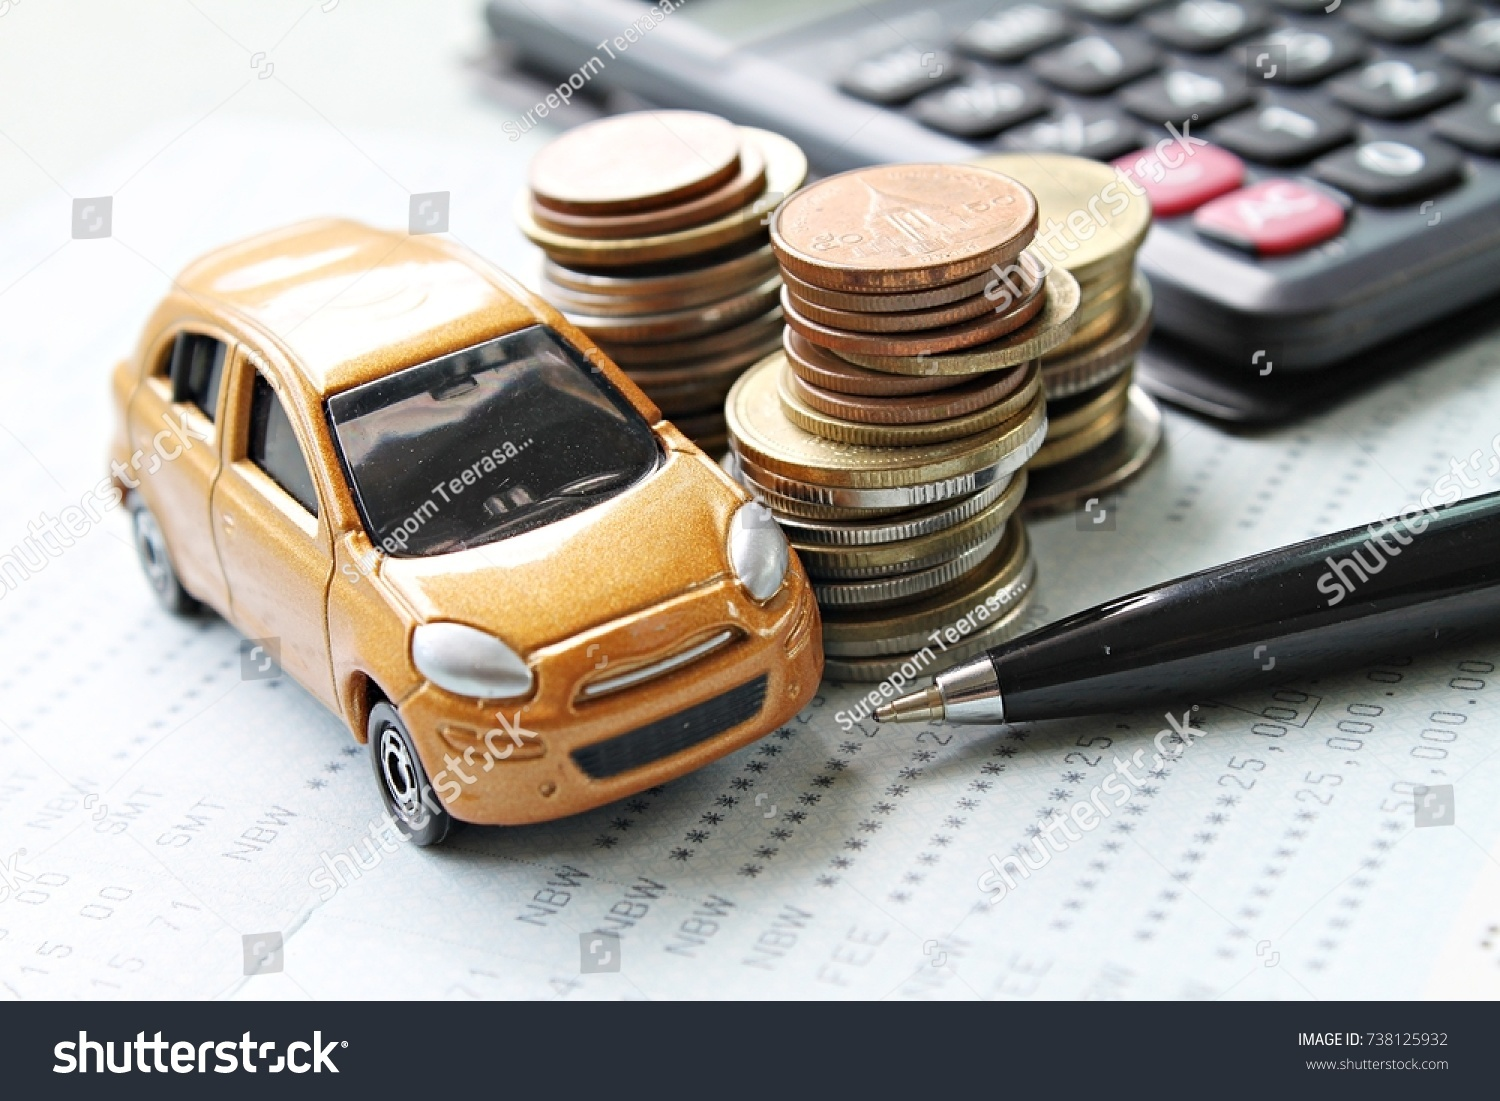 Business Finance Saving Money Or Car Loan Concept Miniature Car Model Coins